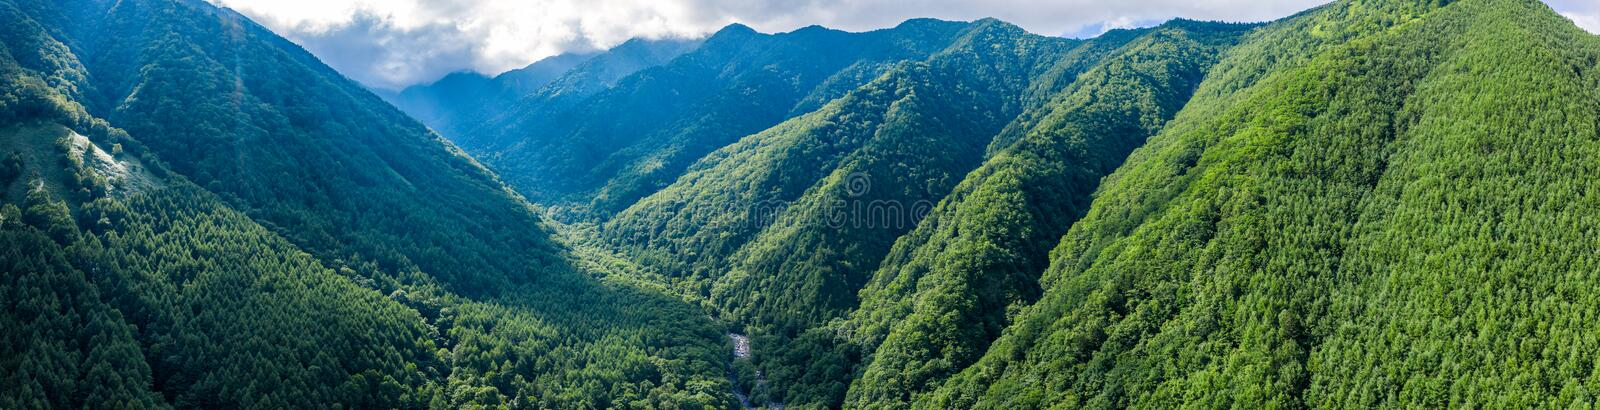 Aerial drone photo - Mountains of Nagano Prefecture.  Japan, Asia. The beautiful mountains of Nagano, Japan stock photos